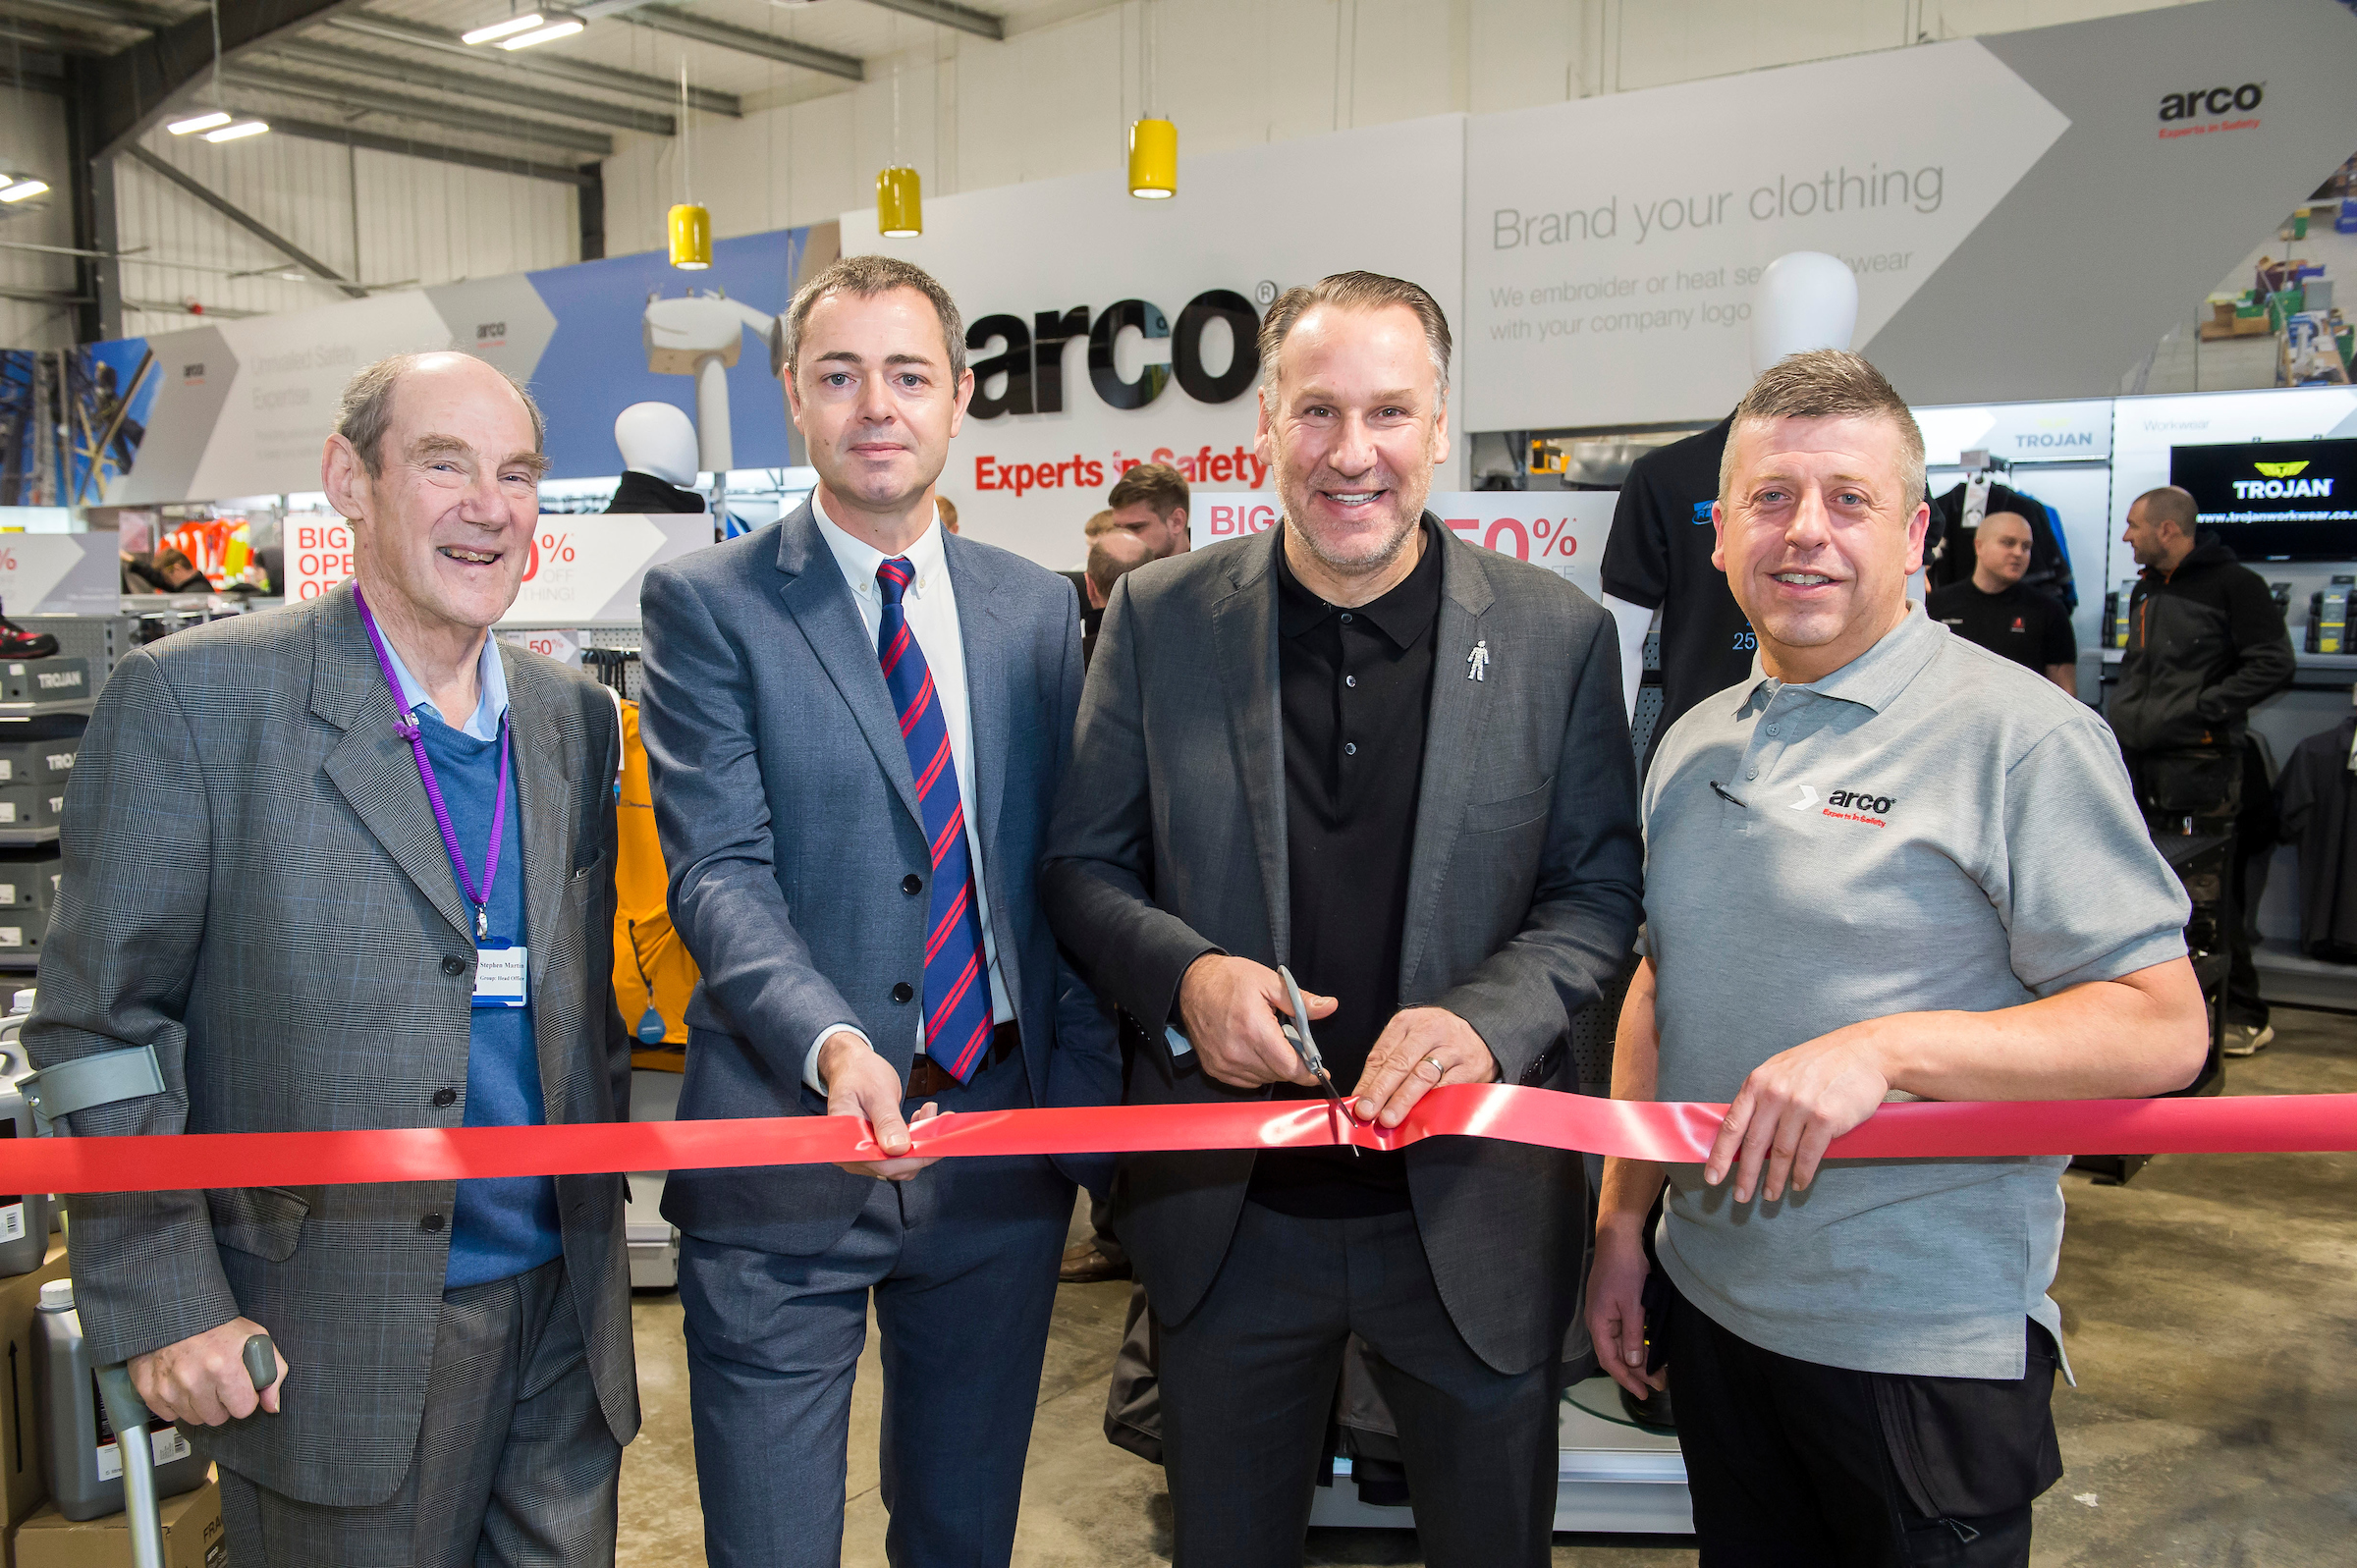 PCIAW | PCIAW News | Arco relocates Hull store to new premises